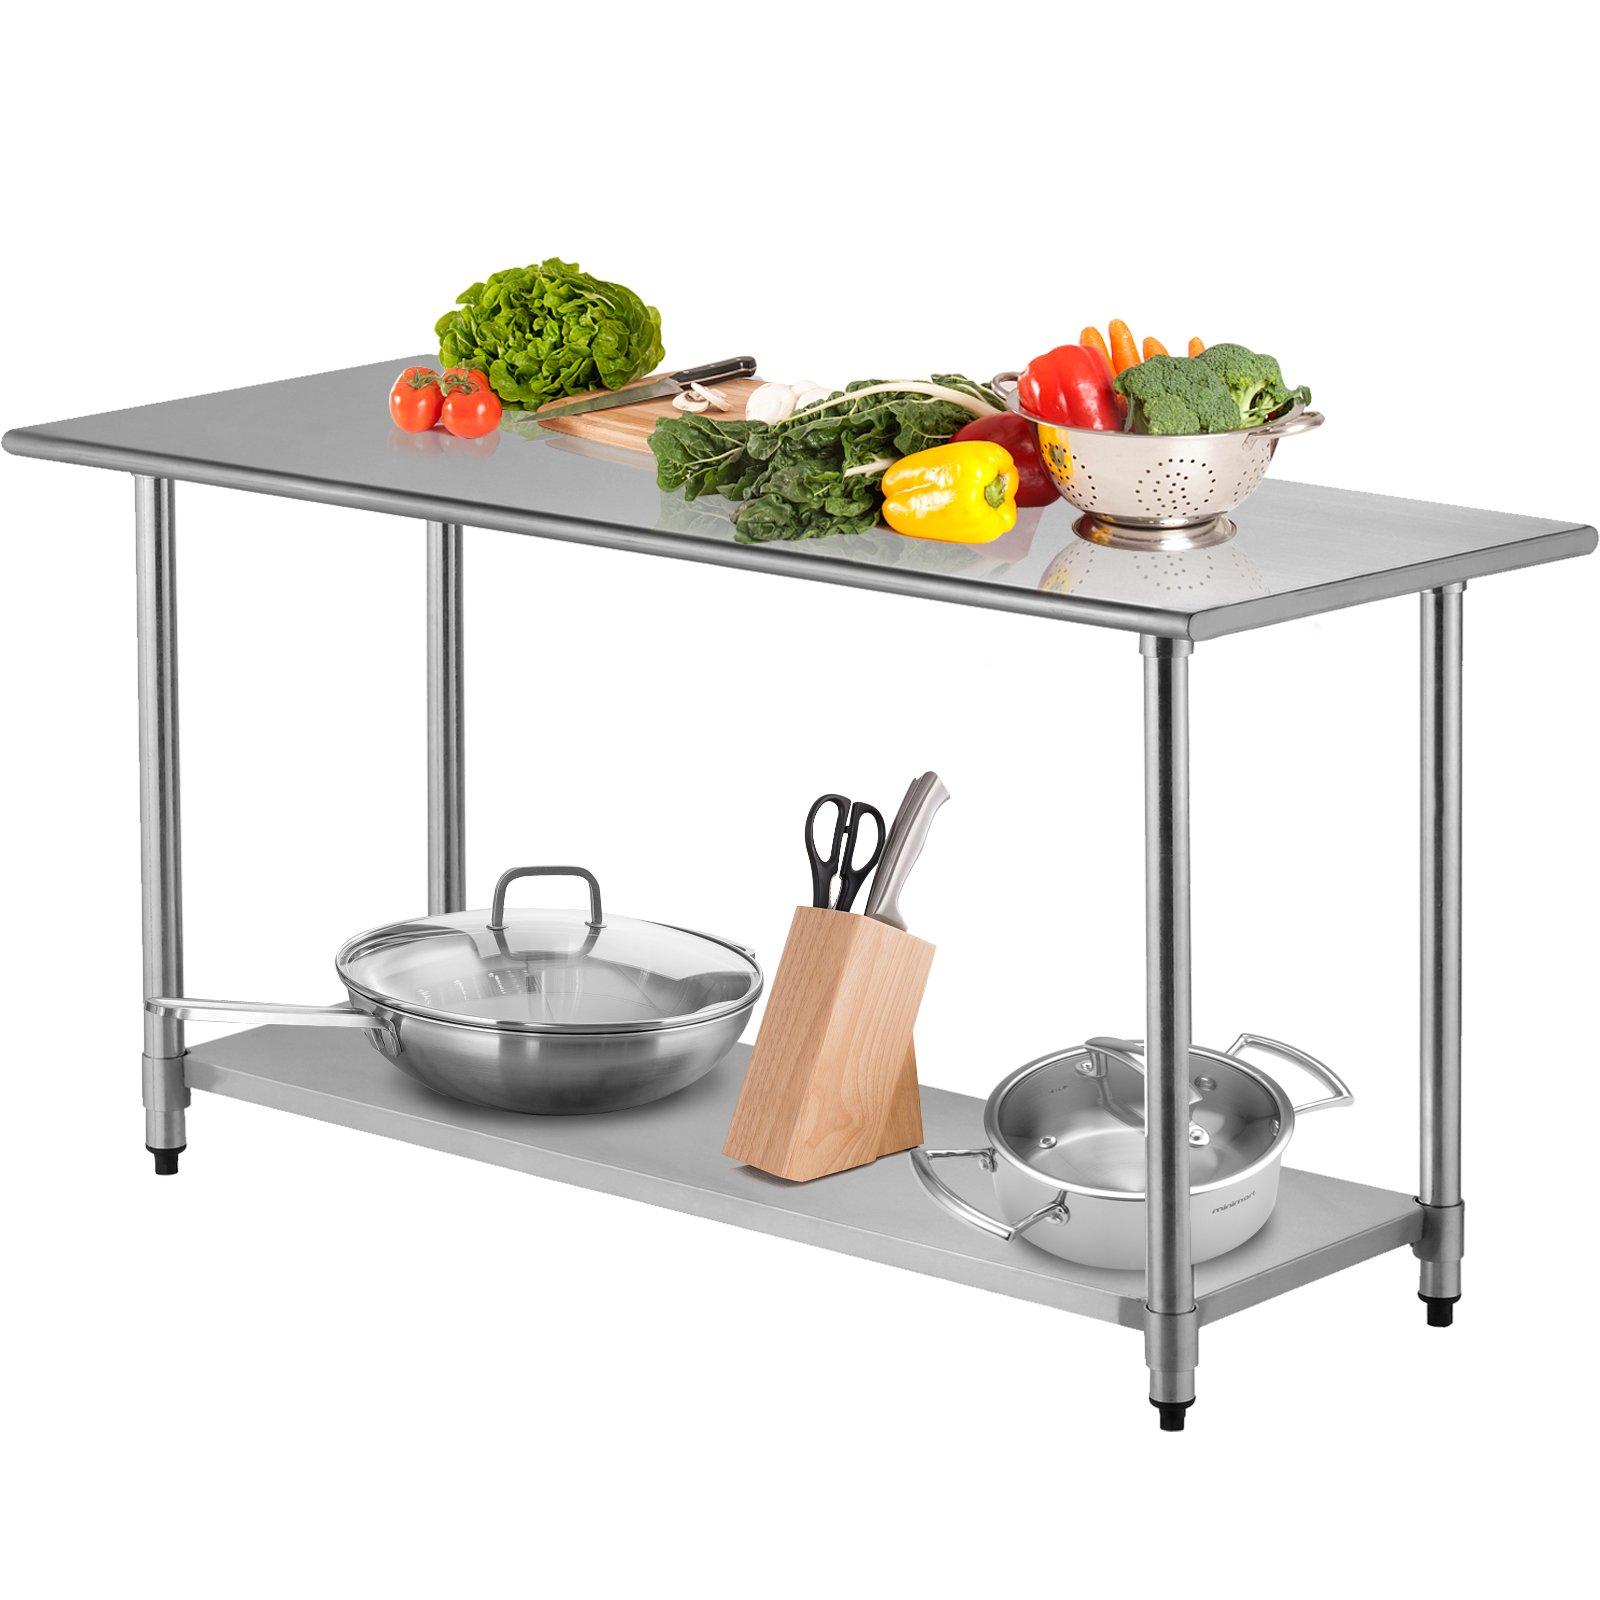 SUNCOO Commercial Stainless Steel Work Food Prep Table with Undershelf (72 in Long x 30 in Deep Without Backsplash)